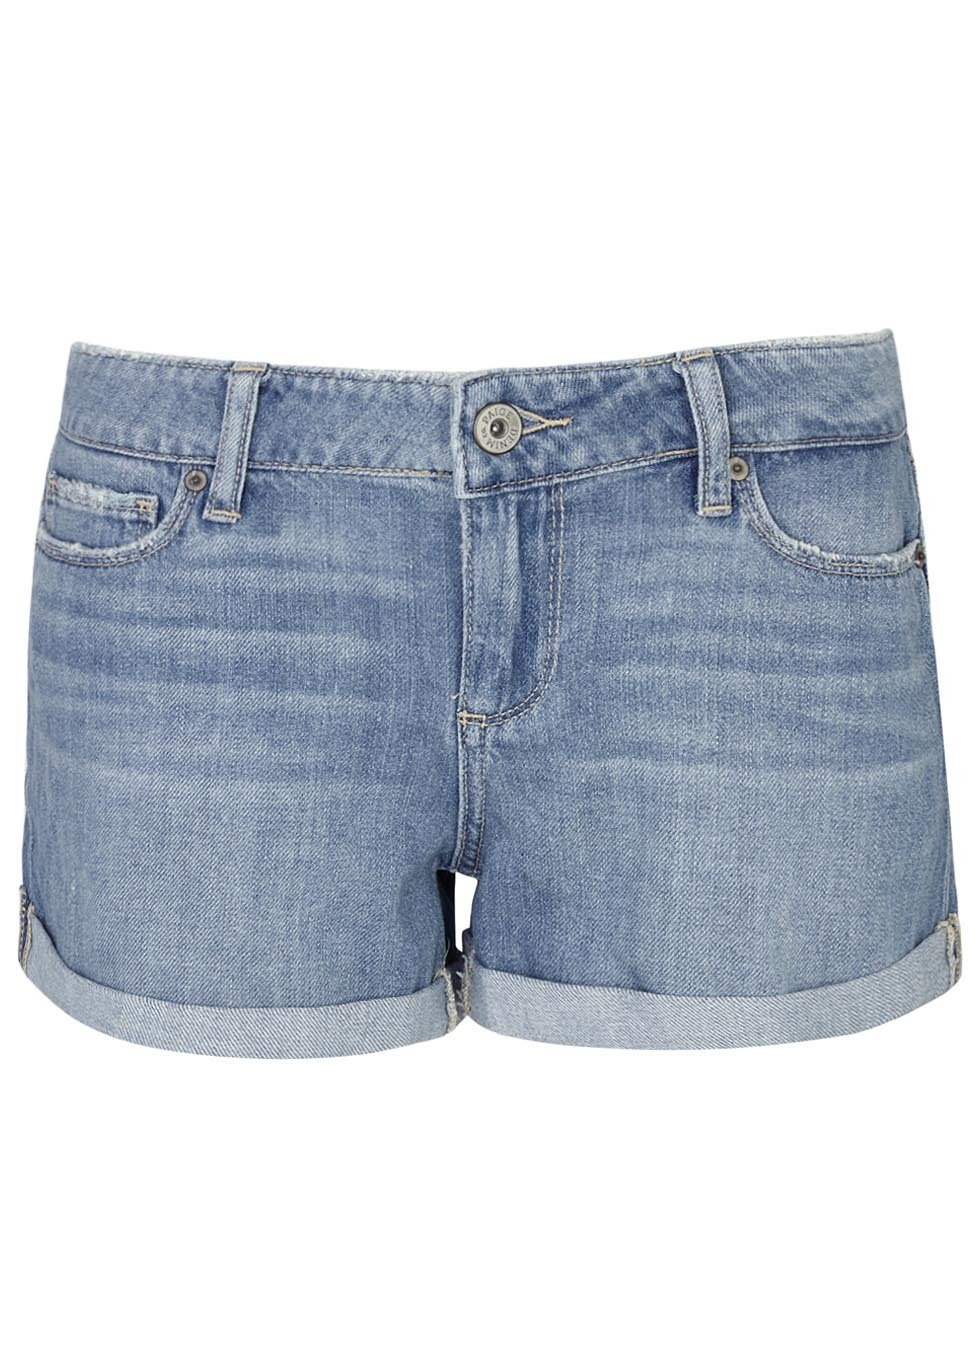 Jimmy Jimmy Blue Denim Shorts - pattern: plain; waist: mid/regular rise; predominant colour: denim; occasions: casual, holiday; fibres: cotton - stretch; texture group: denim; pattern type: fabric; season: s/s 2016; style: denim; length: short shorts; fit: slim leg; wardrobe: holiday